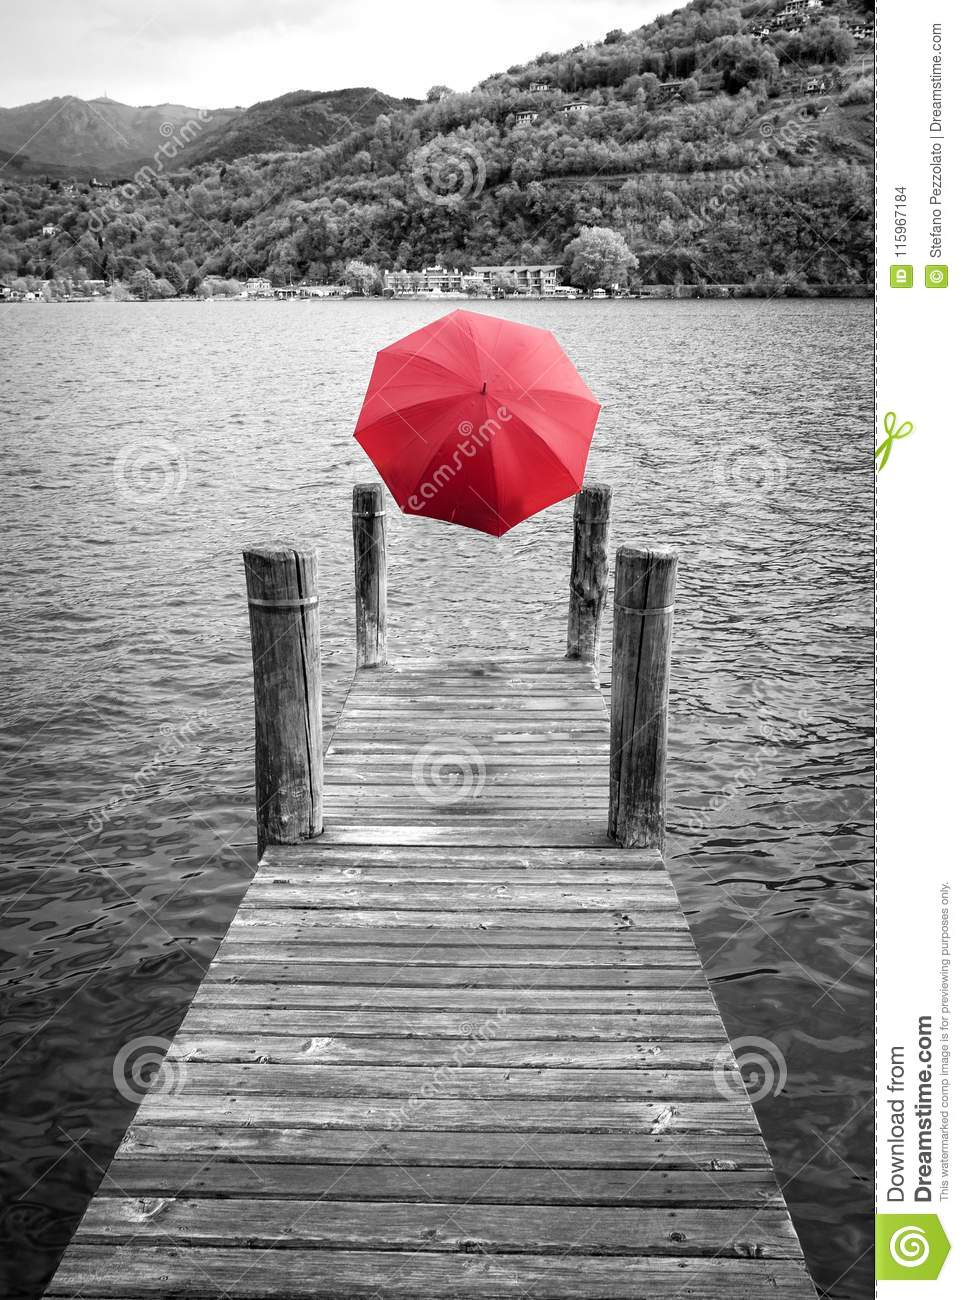 Ghost On The Lakeside Black And White Photo Stock Photo Image Of